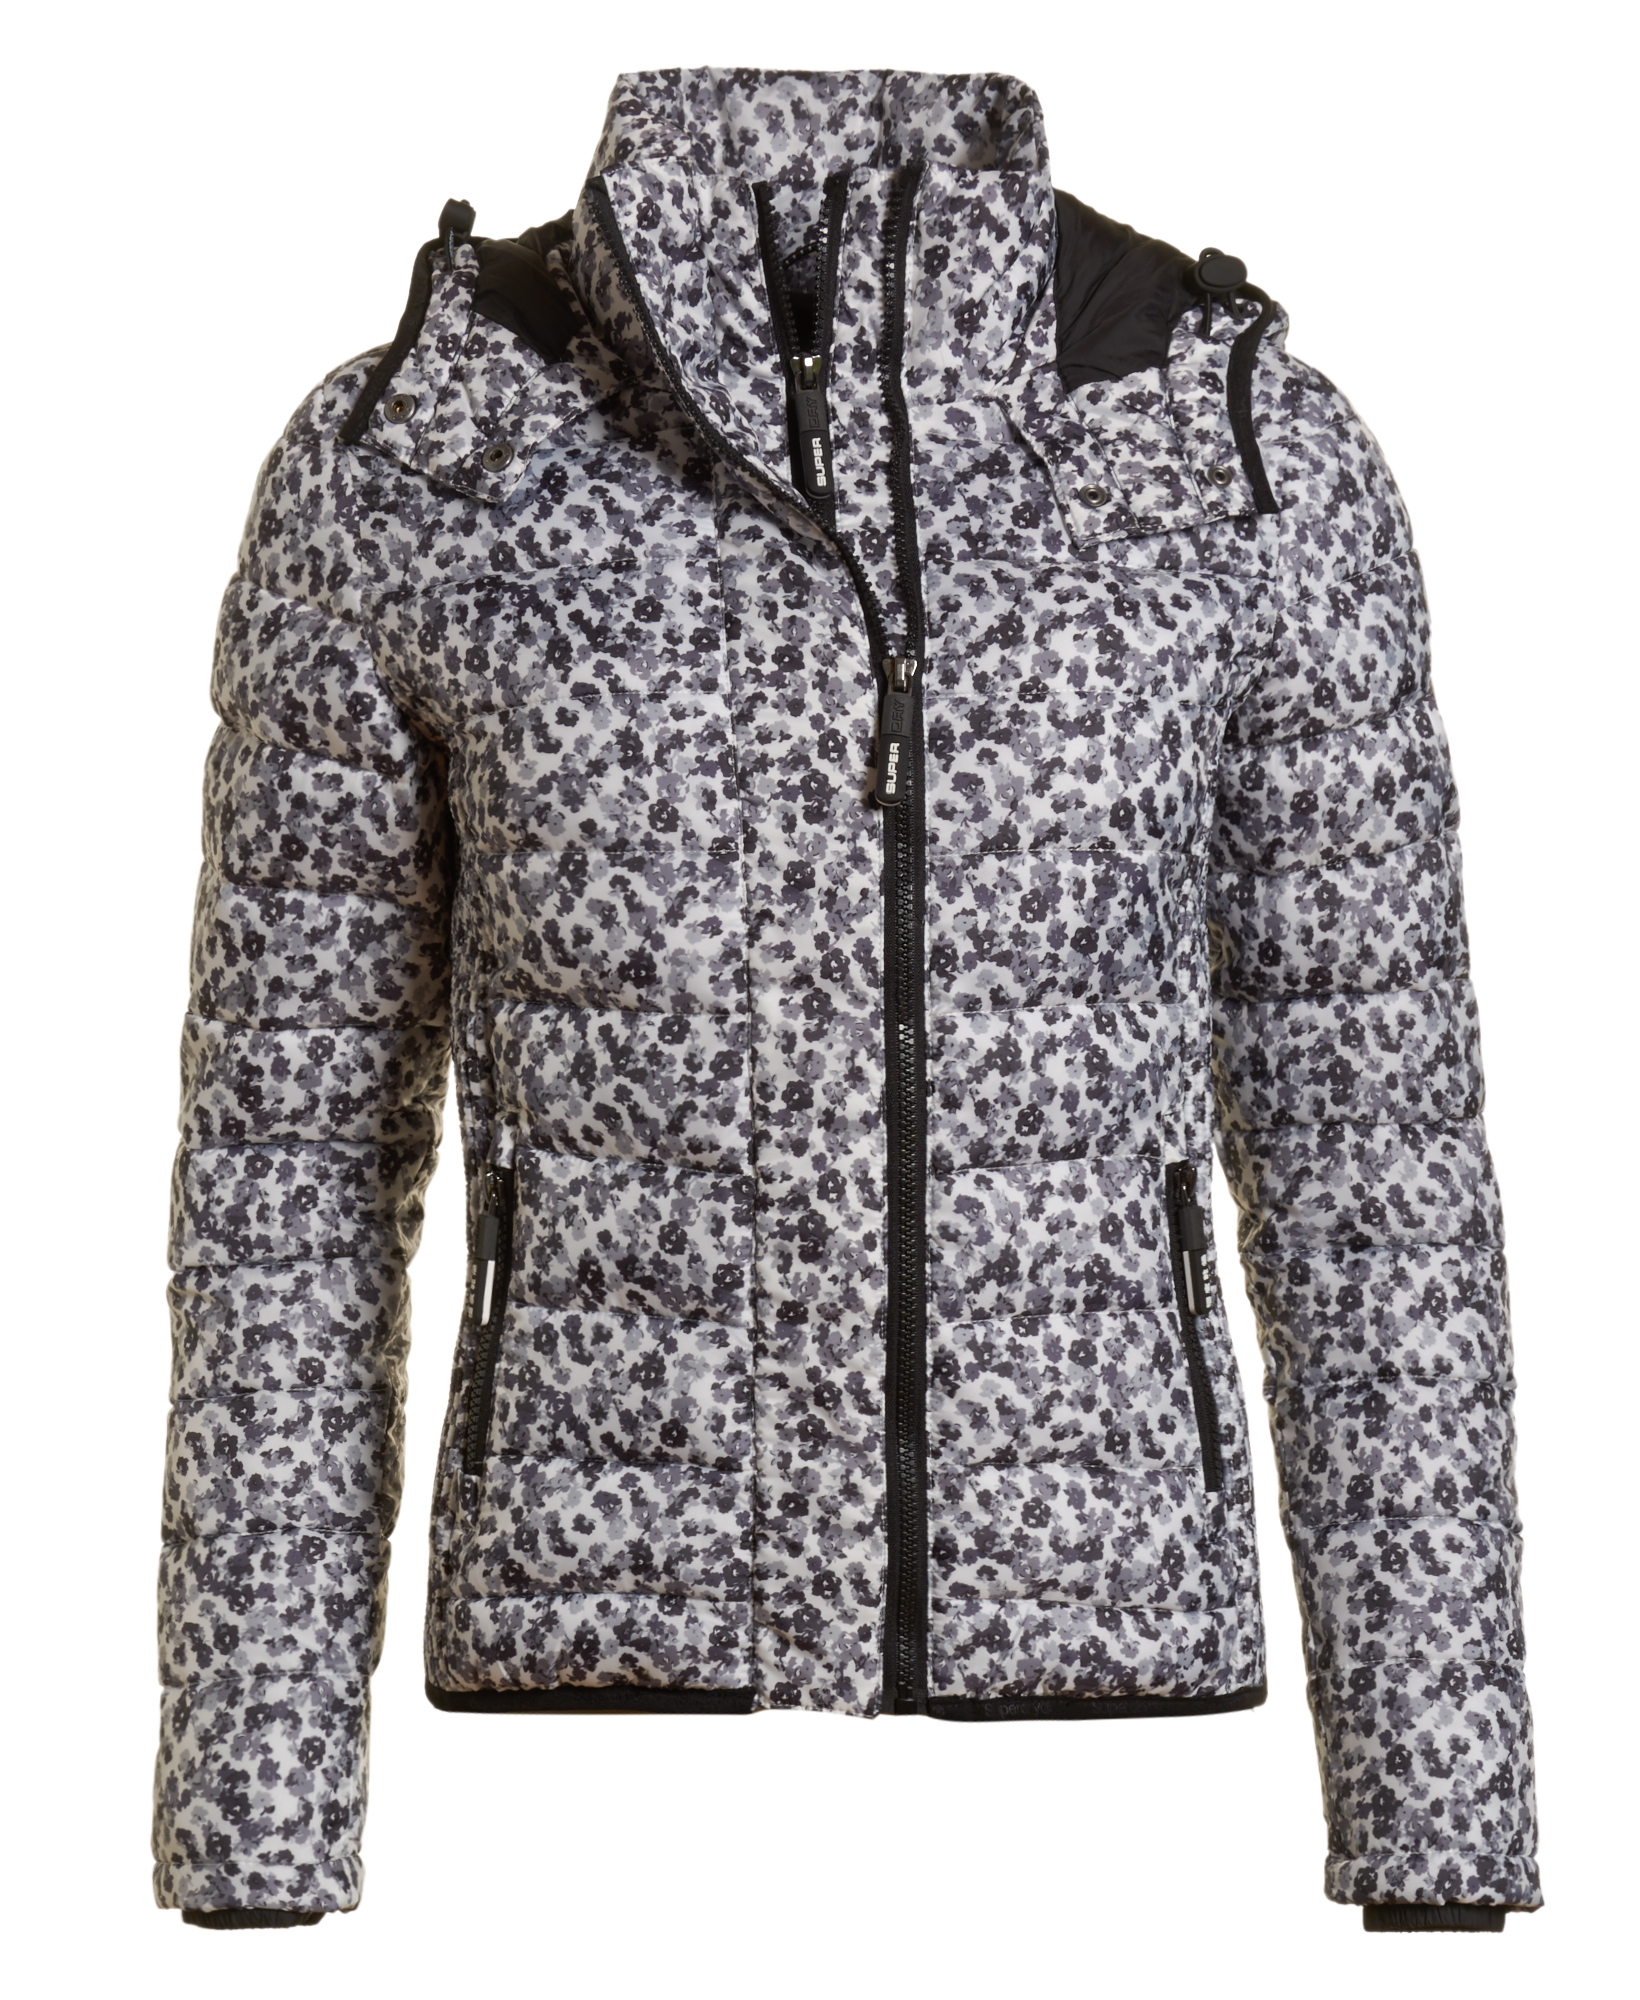 neuer damen superdry jacke fuji floral slim zip hood monochrome ditsy ebay. Black Bedroom Furniture Sets. Home Design Ideas